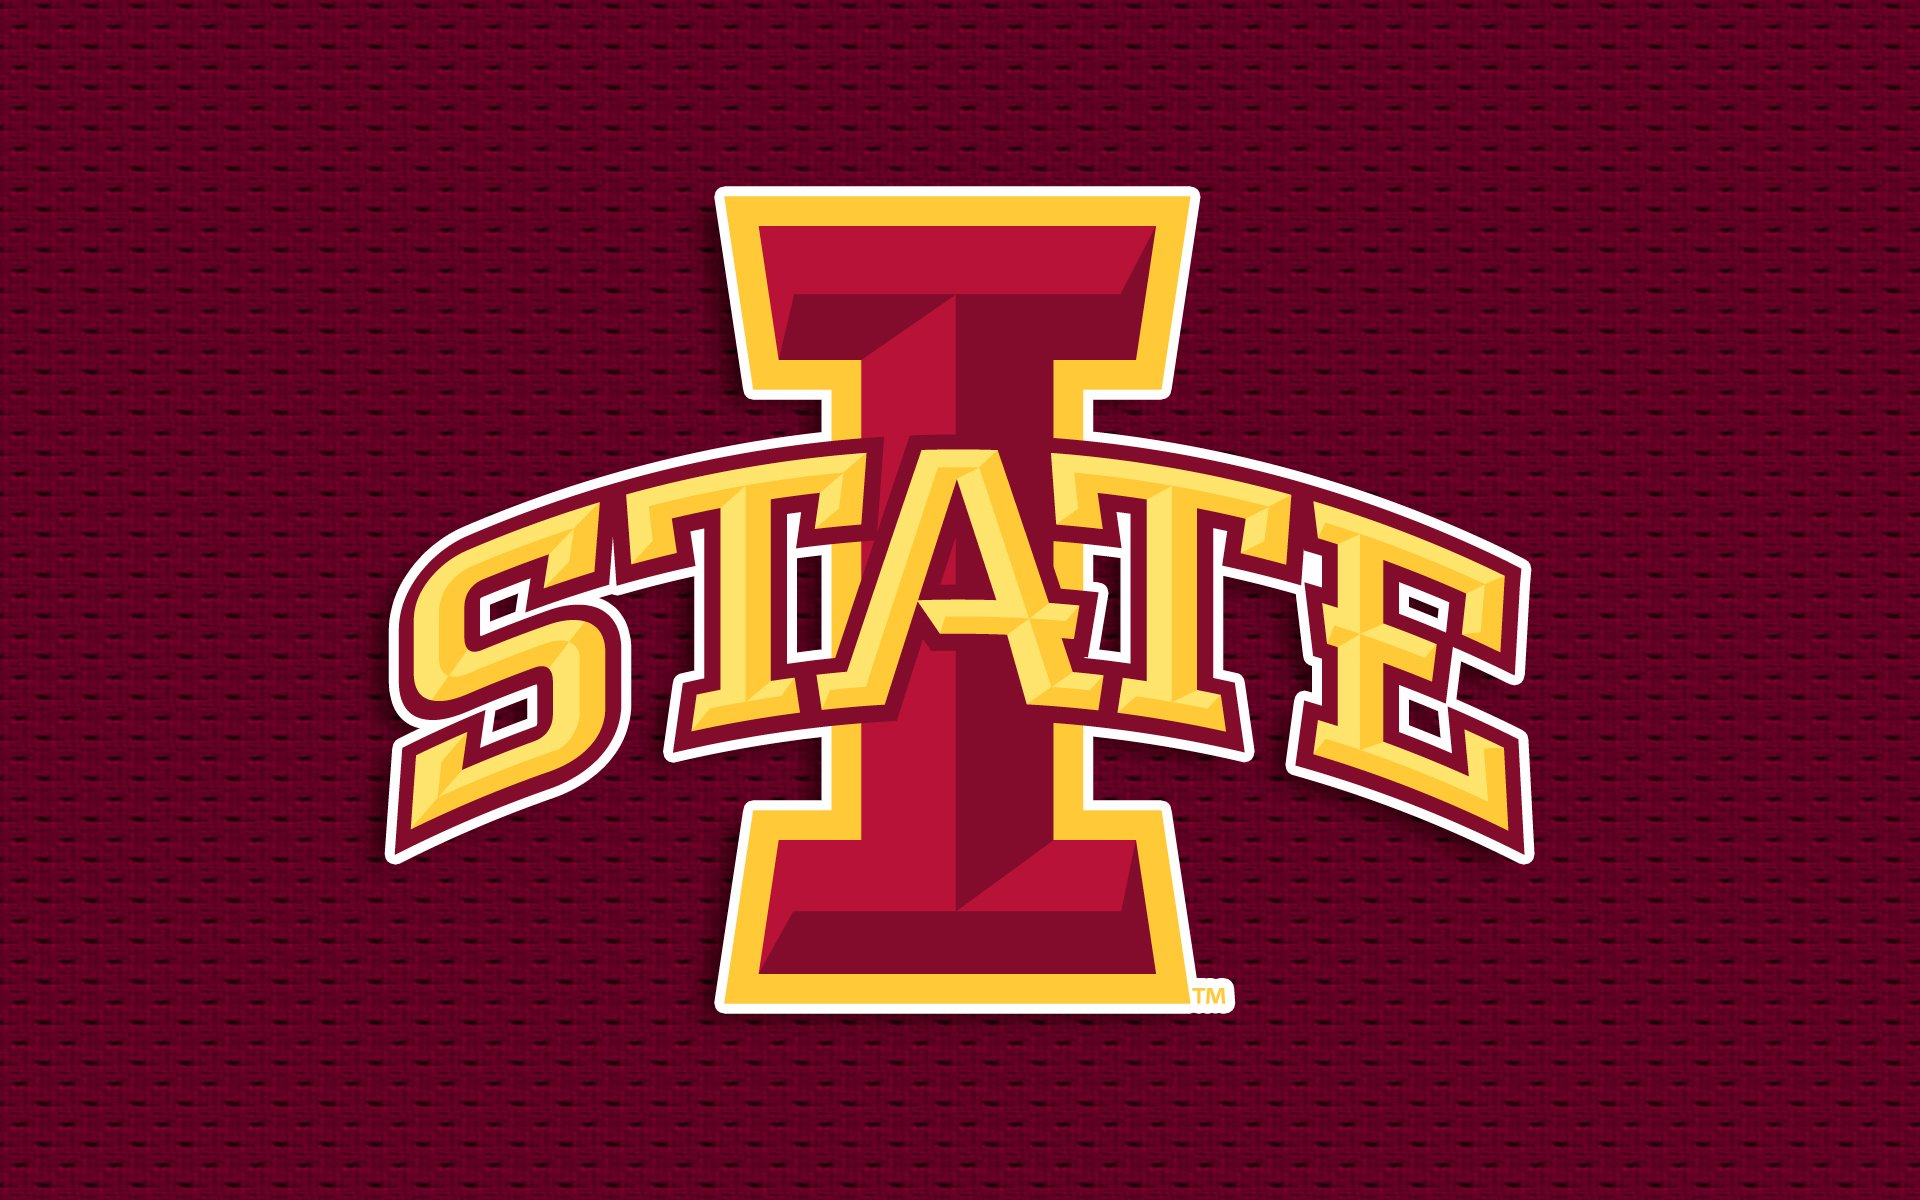 Iowa State Wallpaper for iPhone